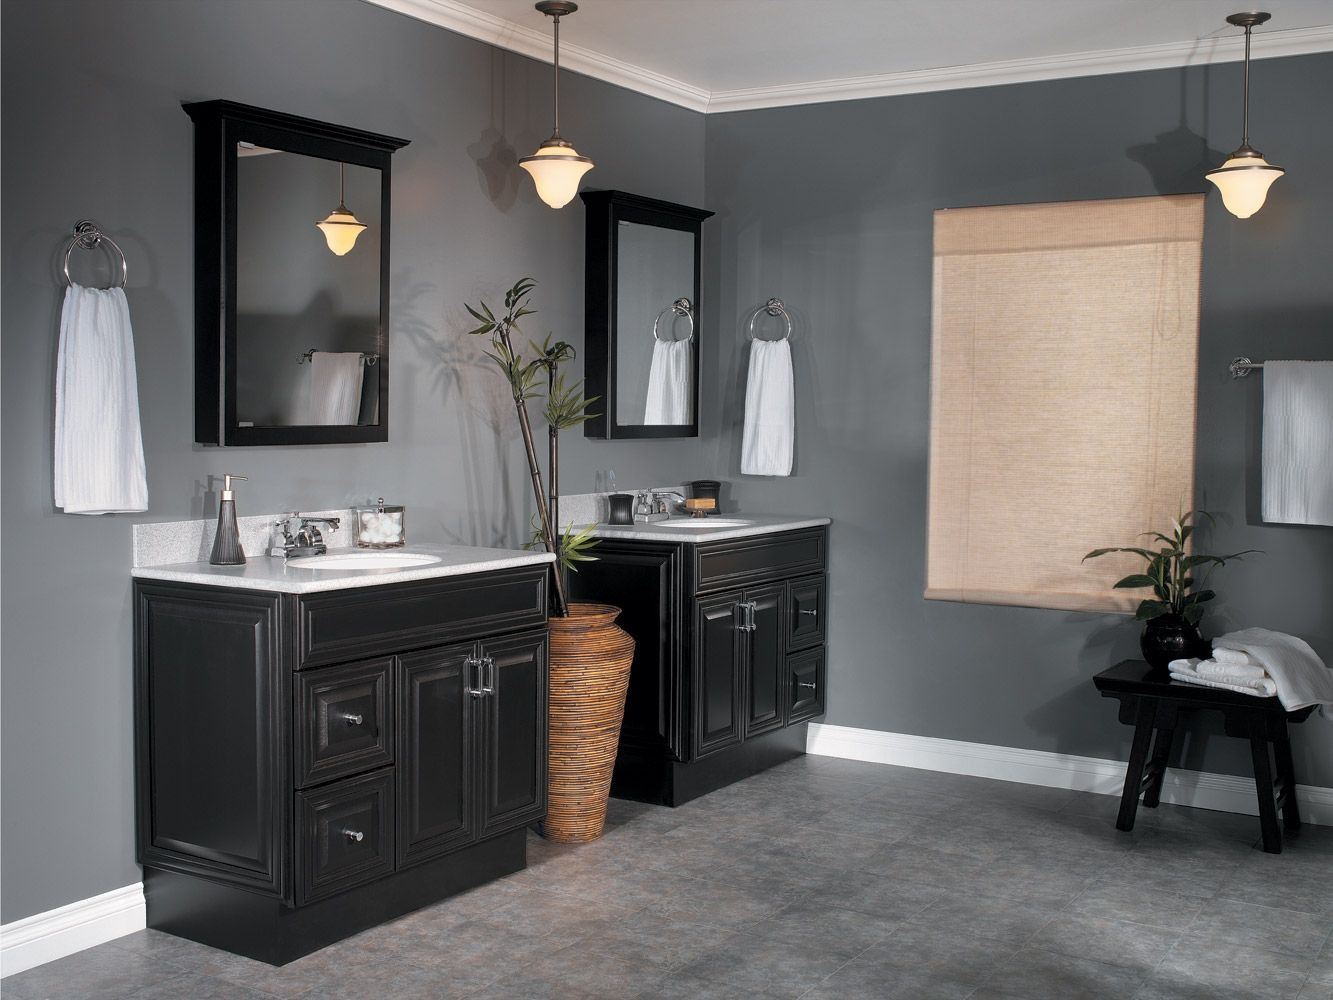 Bathroom Wall Color With Dark Cabinets Black Vanity Bathroom Black Cabinets Bathroom Bathroom Wall Colors